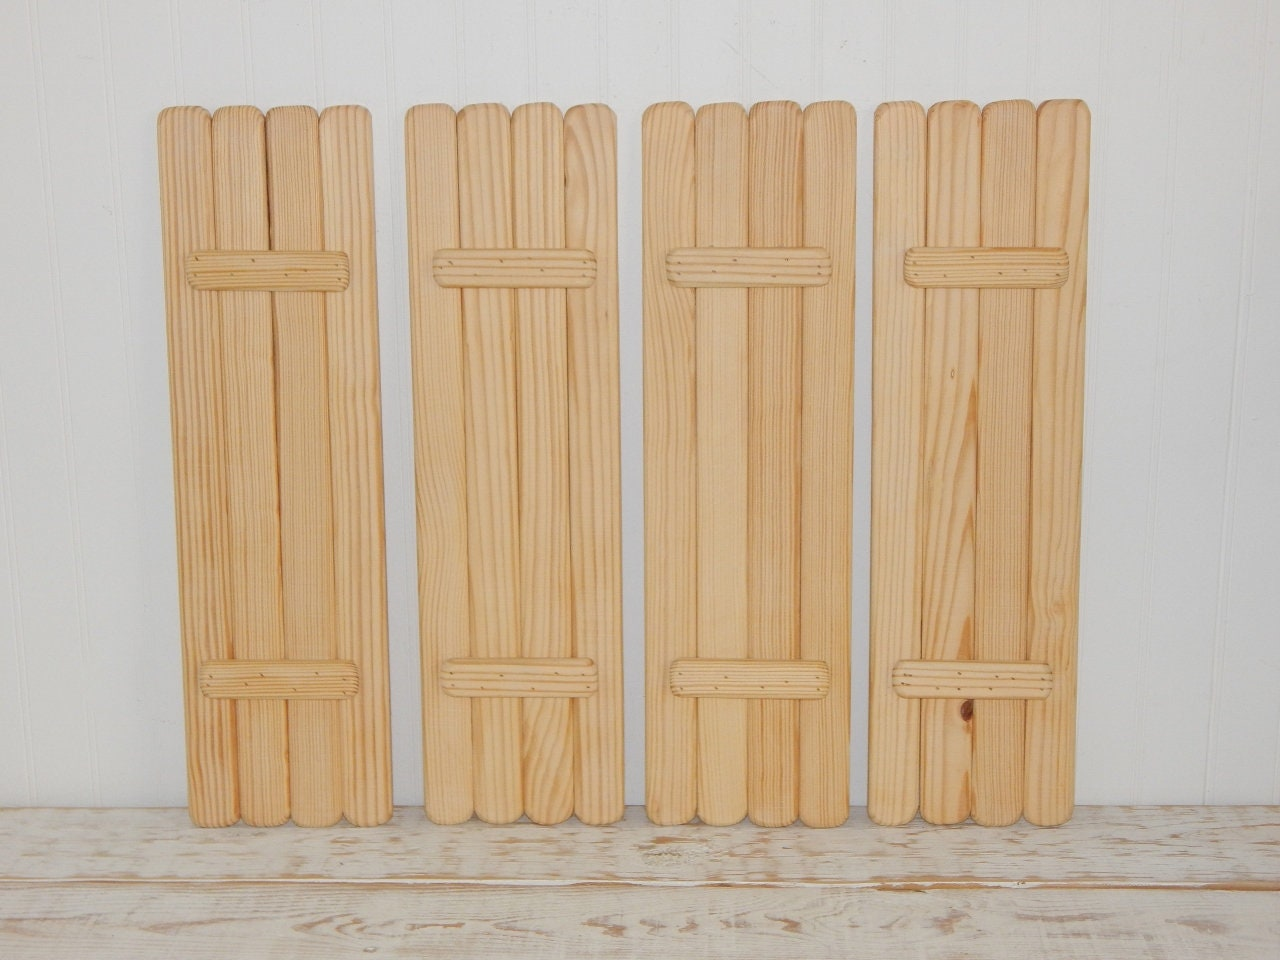 Unfinished wooden shutters set 4 panels 2 pairs interior - Unfinished interior wood shutters ...